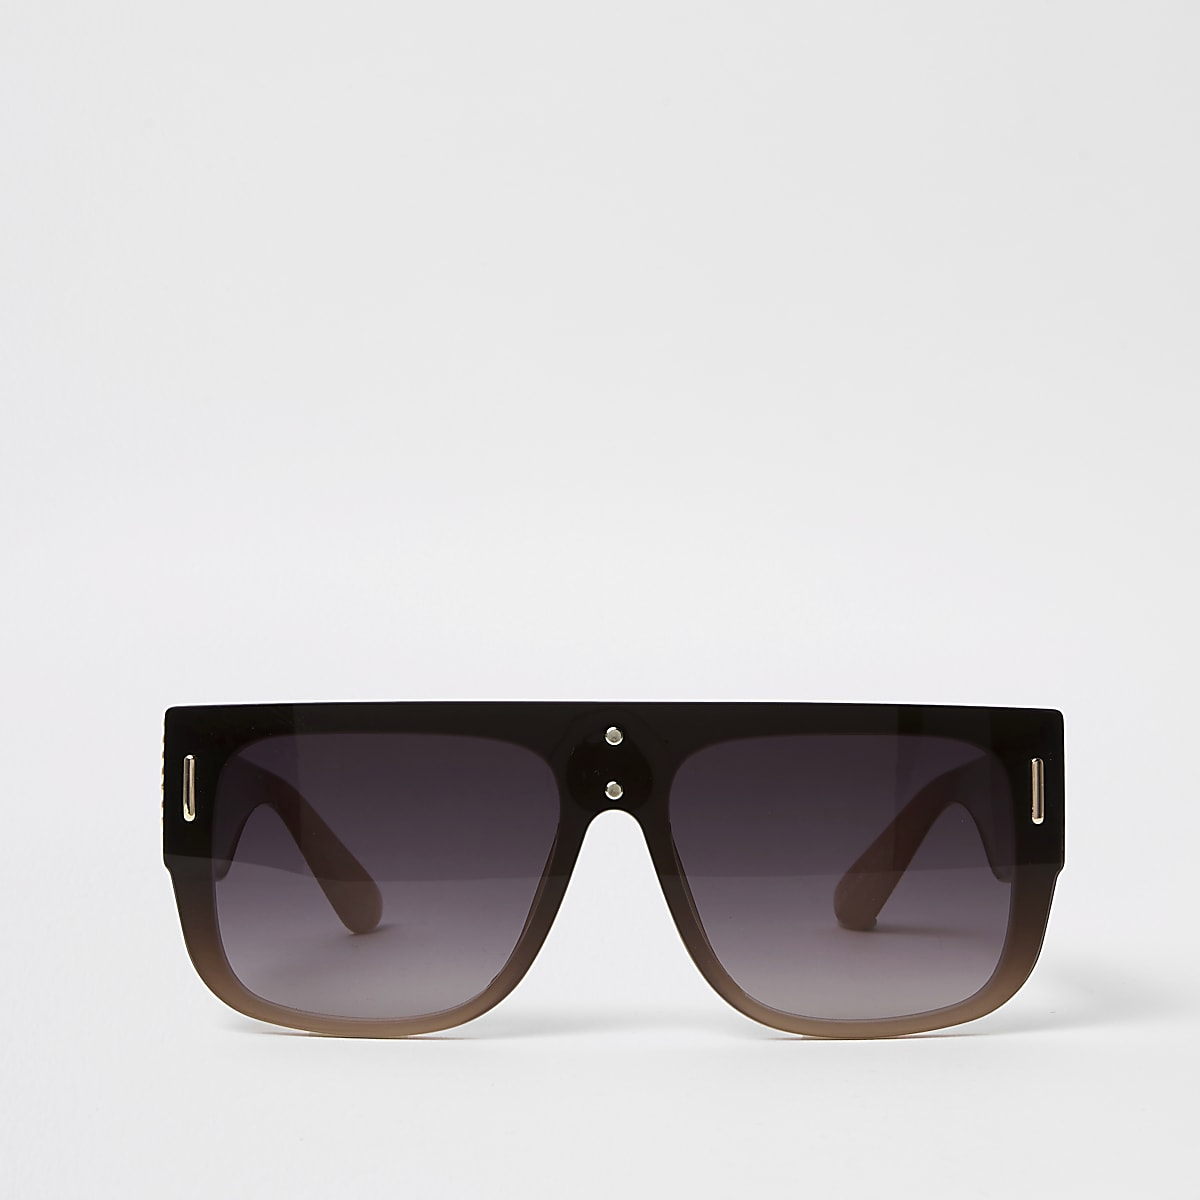 Black smoke lens flat top sunglasses